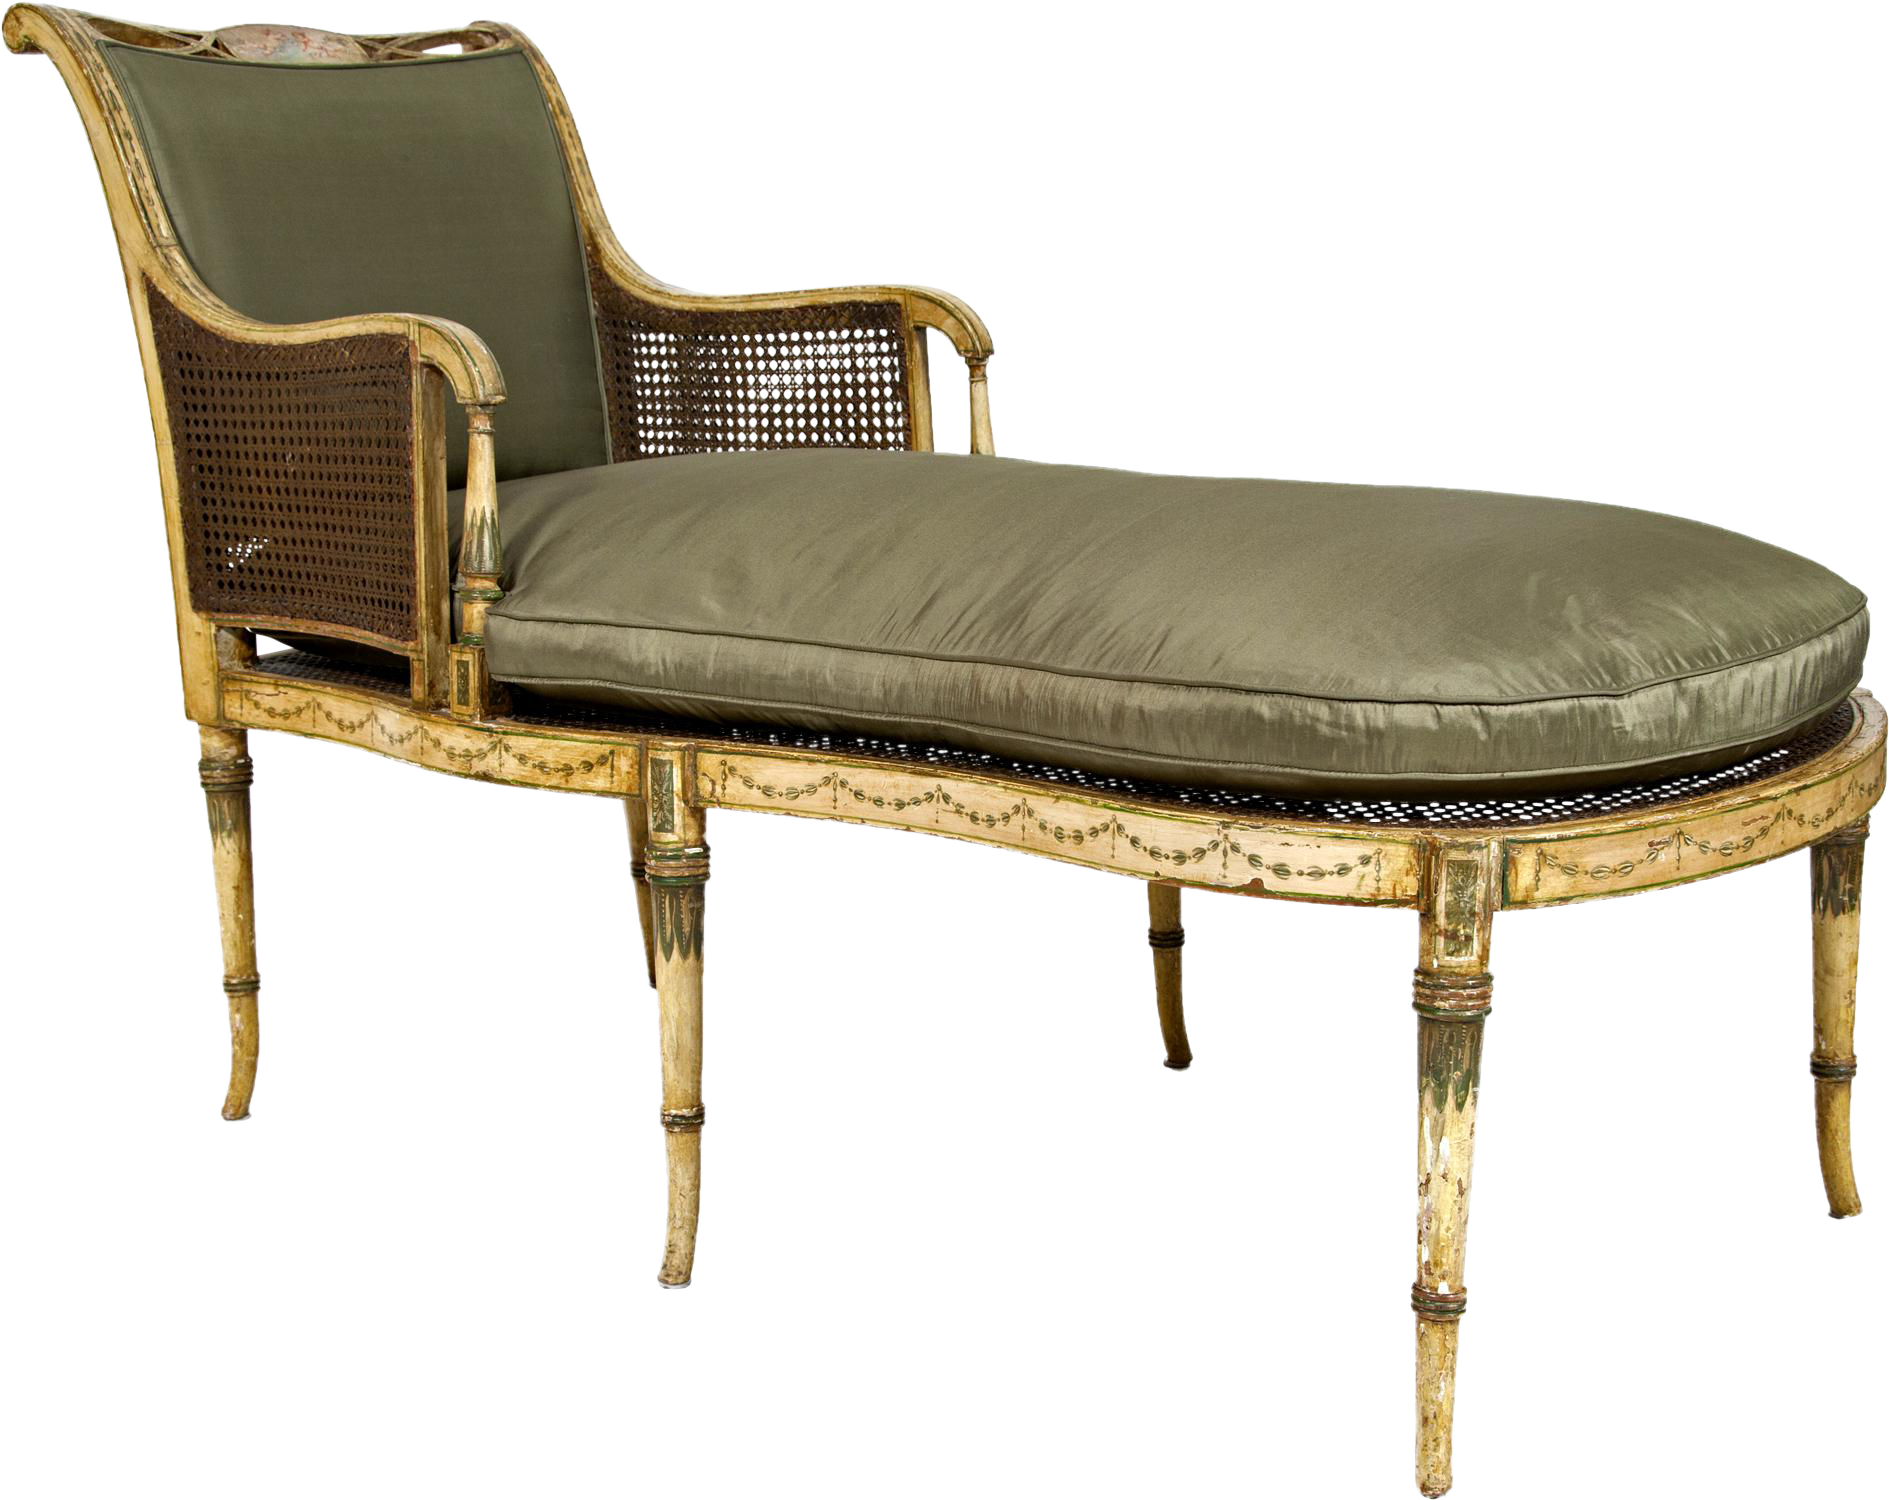 World-Class Early 19th Century Duchesse Brisée Painted Fainting